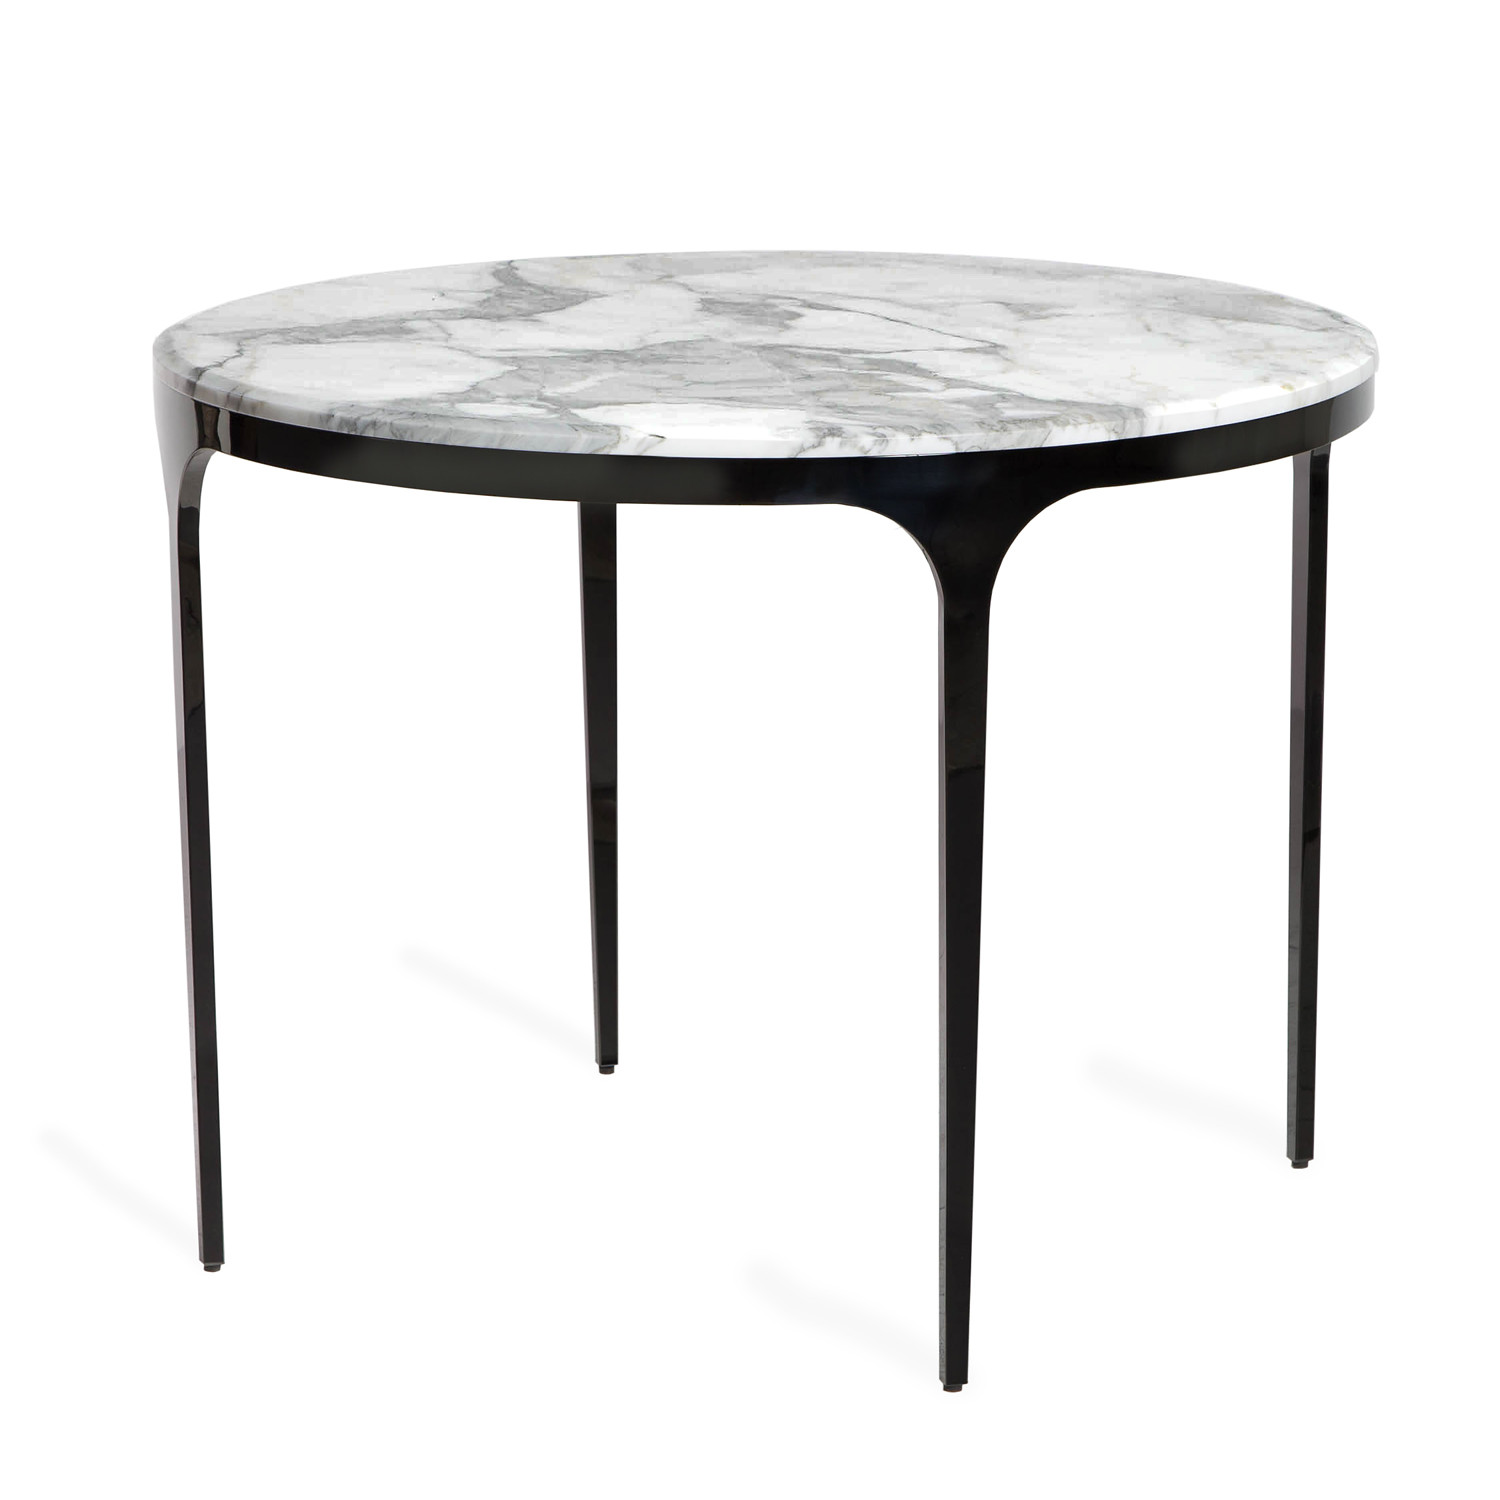 Camilla center dining table nero storm interlude home for Table 6 3 asce 7 05